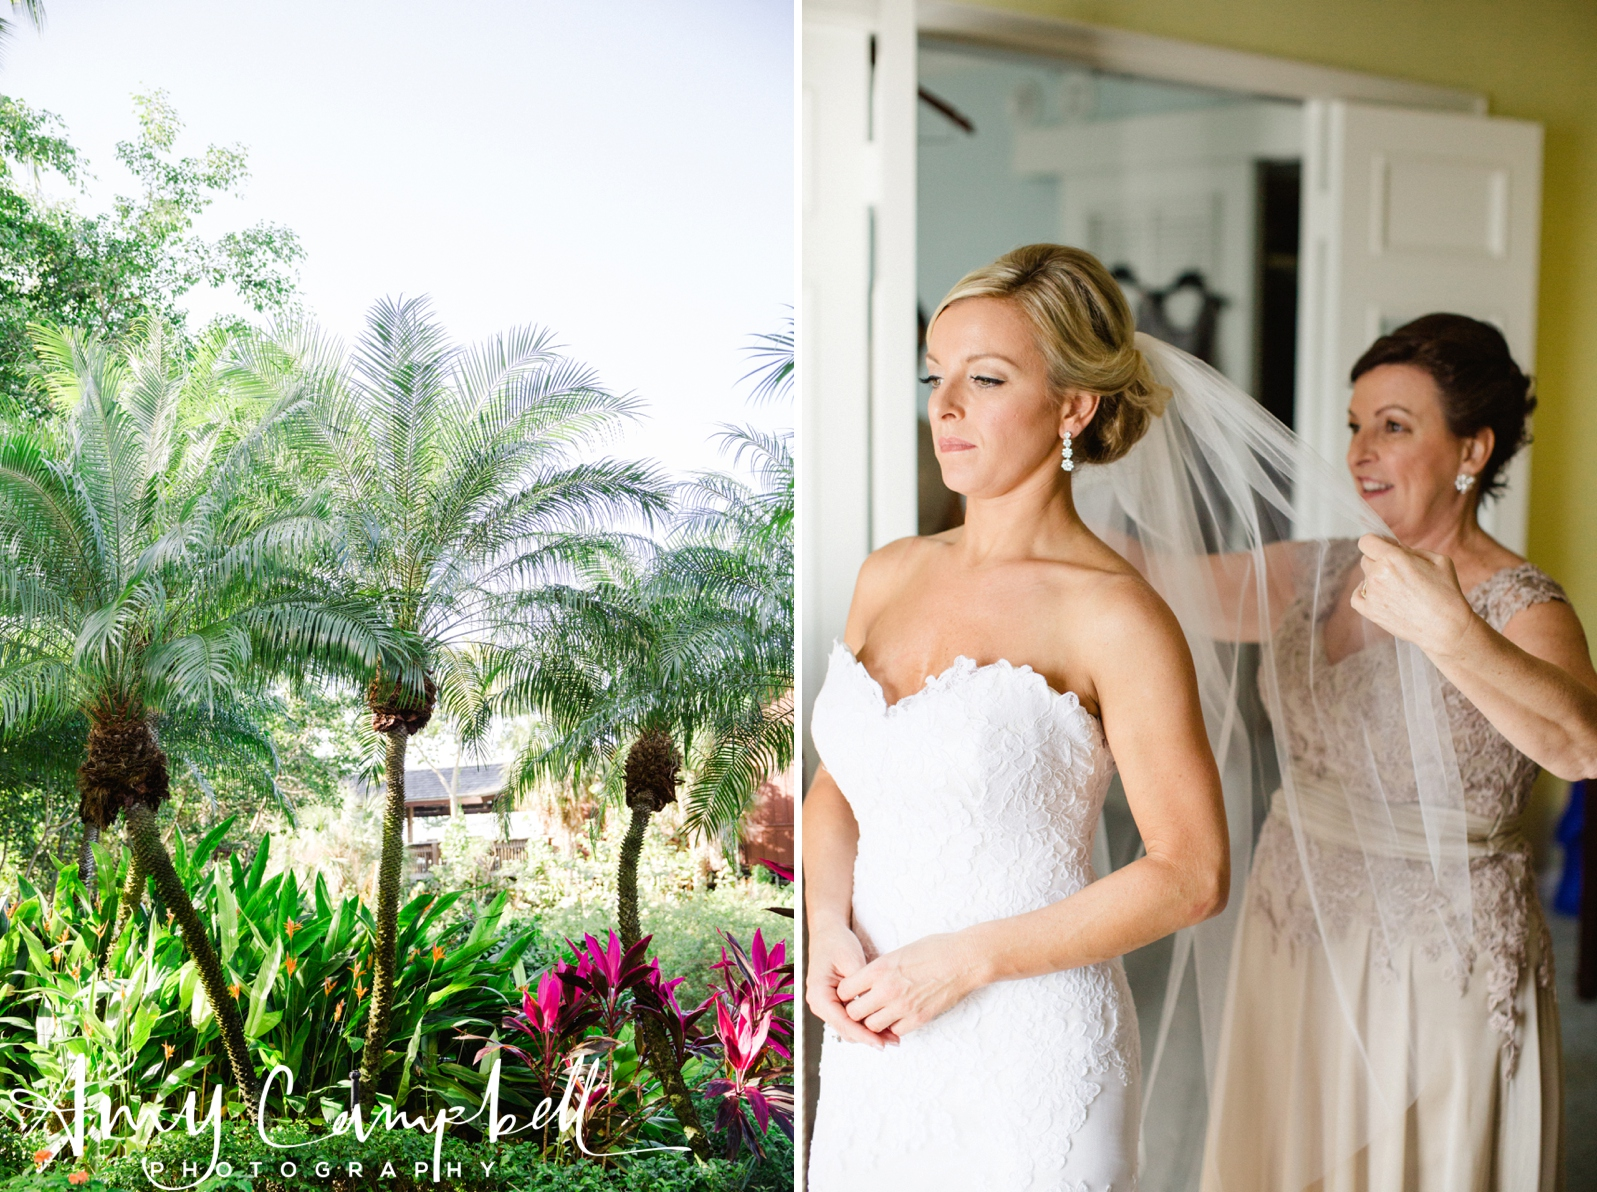 EricaandDexter_Wed_FB_AmyCampbellPhotography_0016.jpg